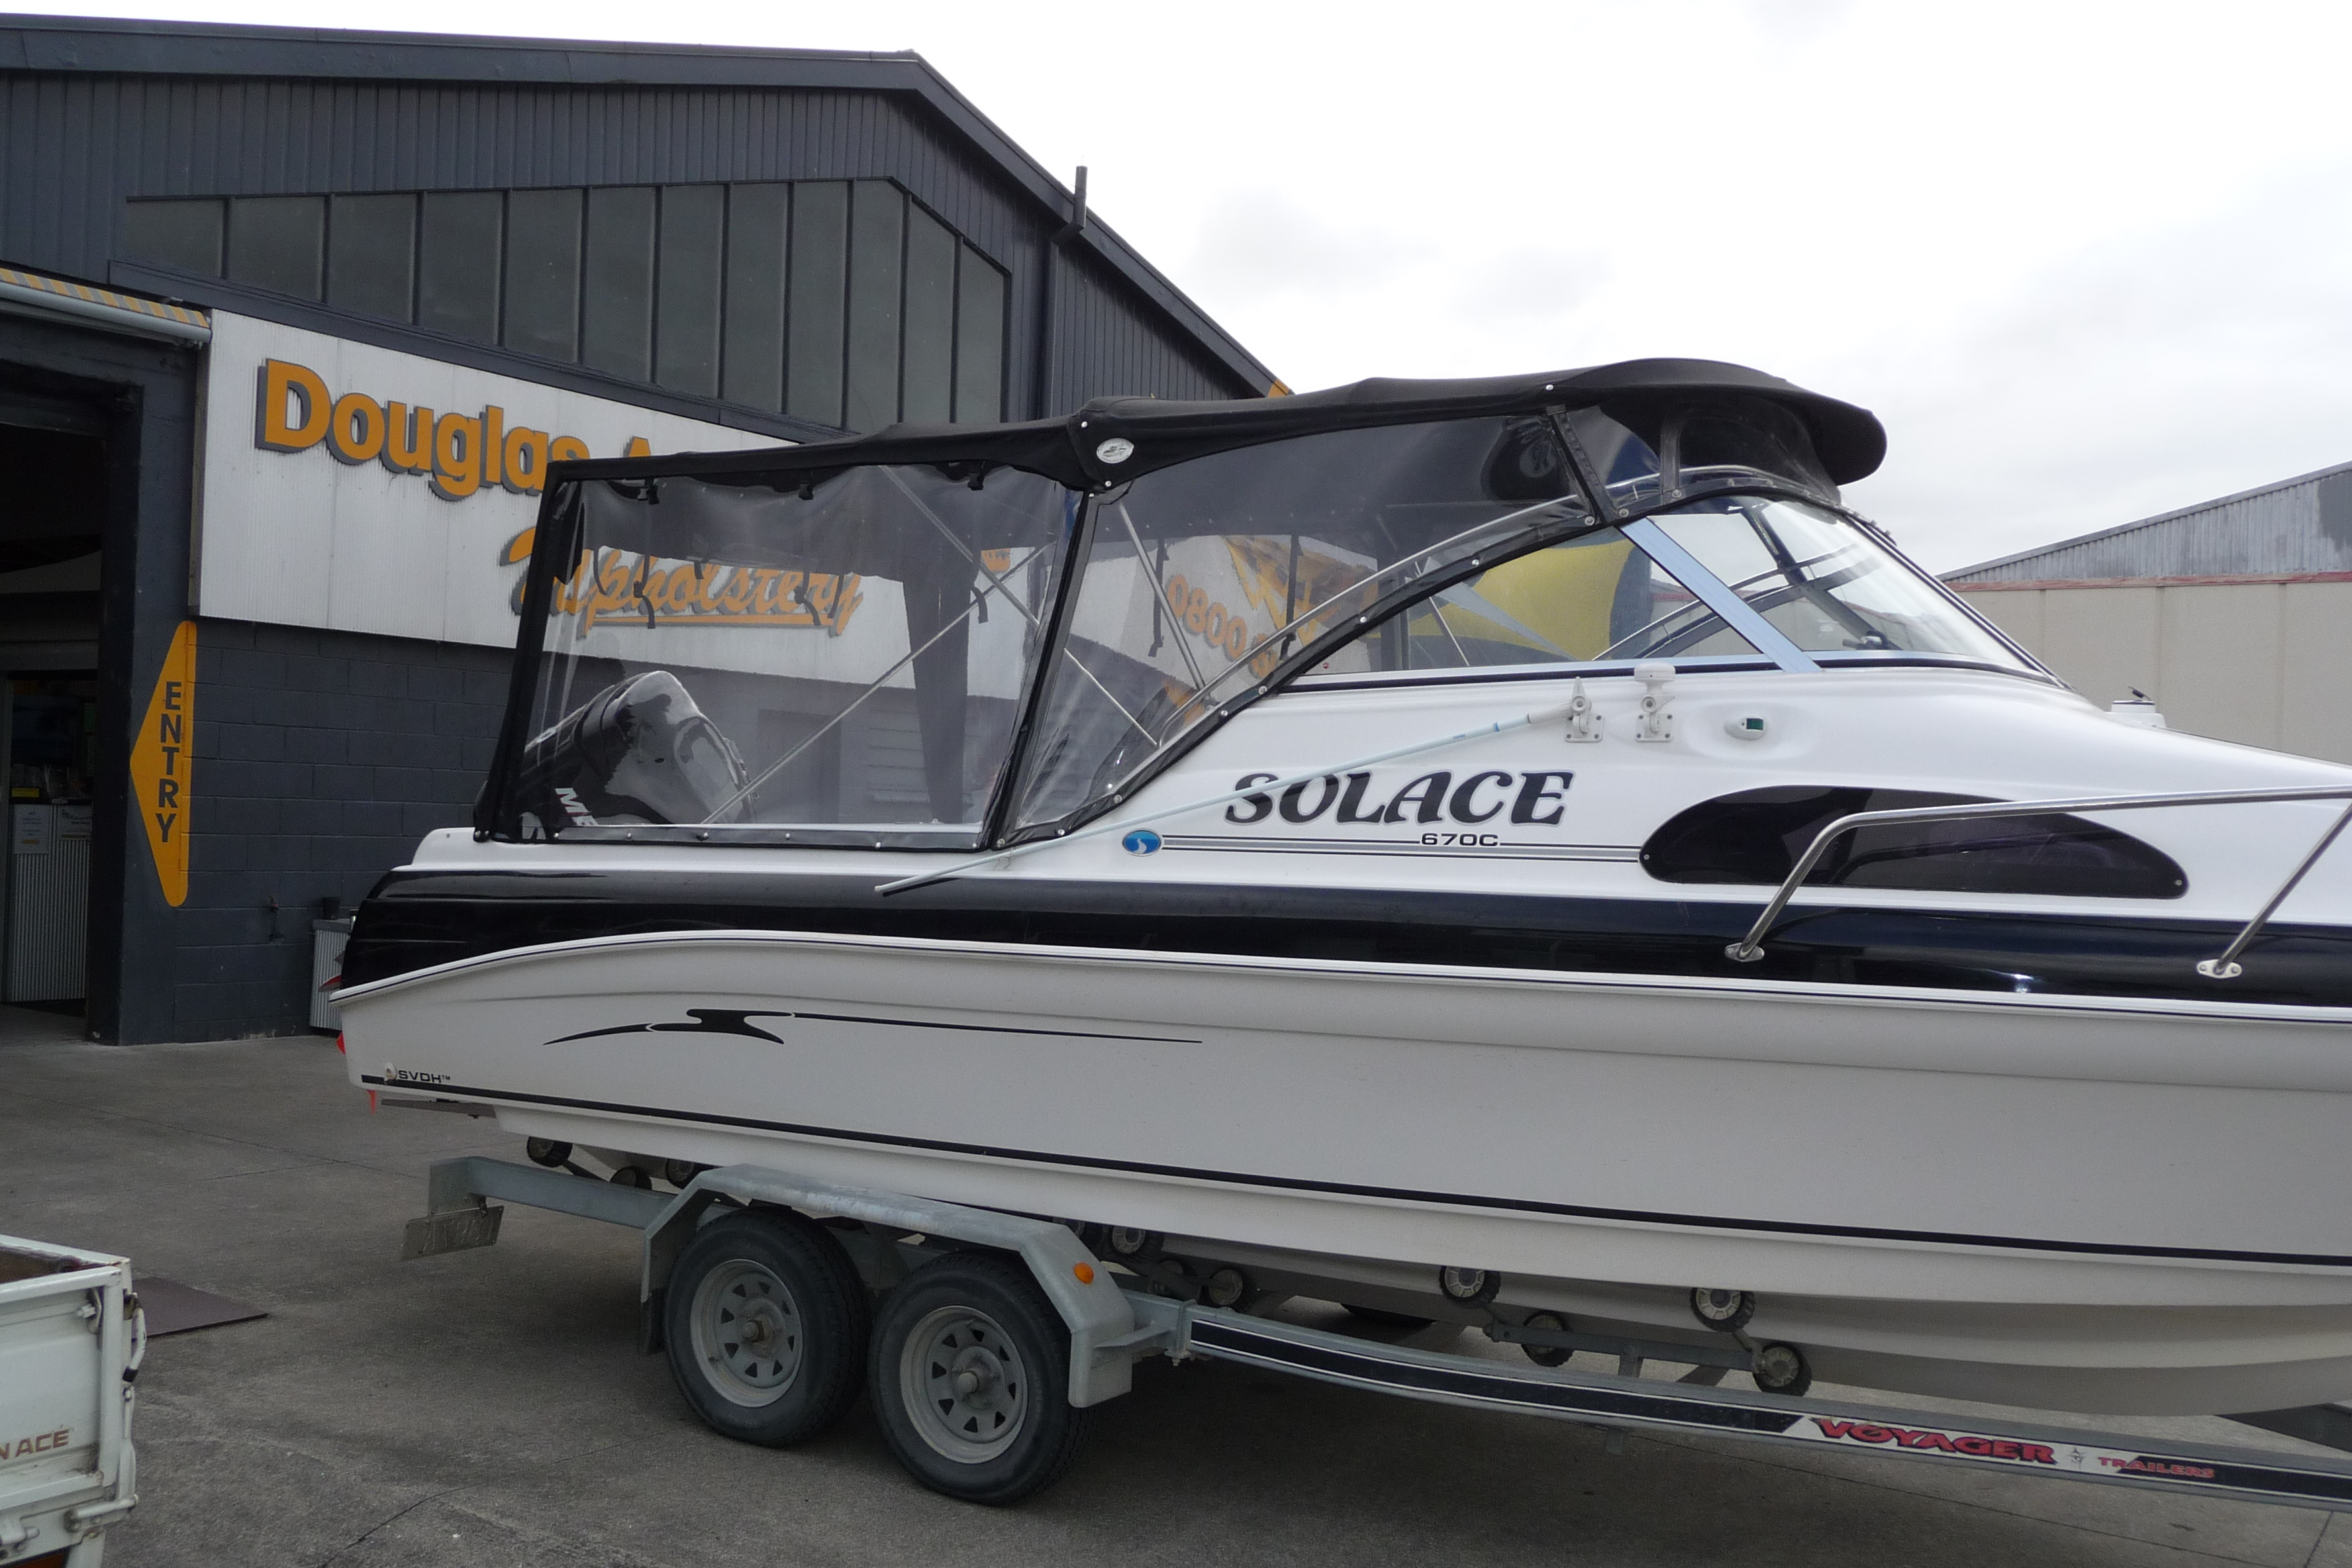 Boating/Camping Package | Douglas Outdoor Living and Auto ...